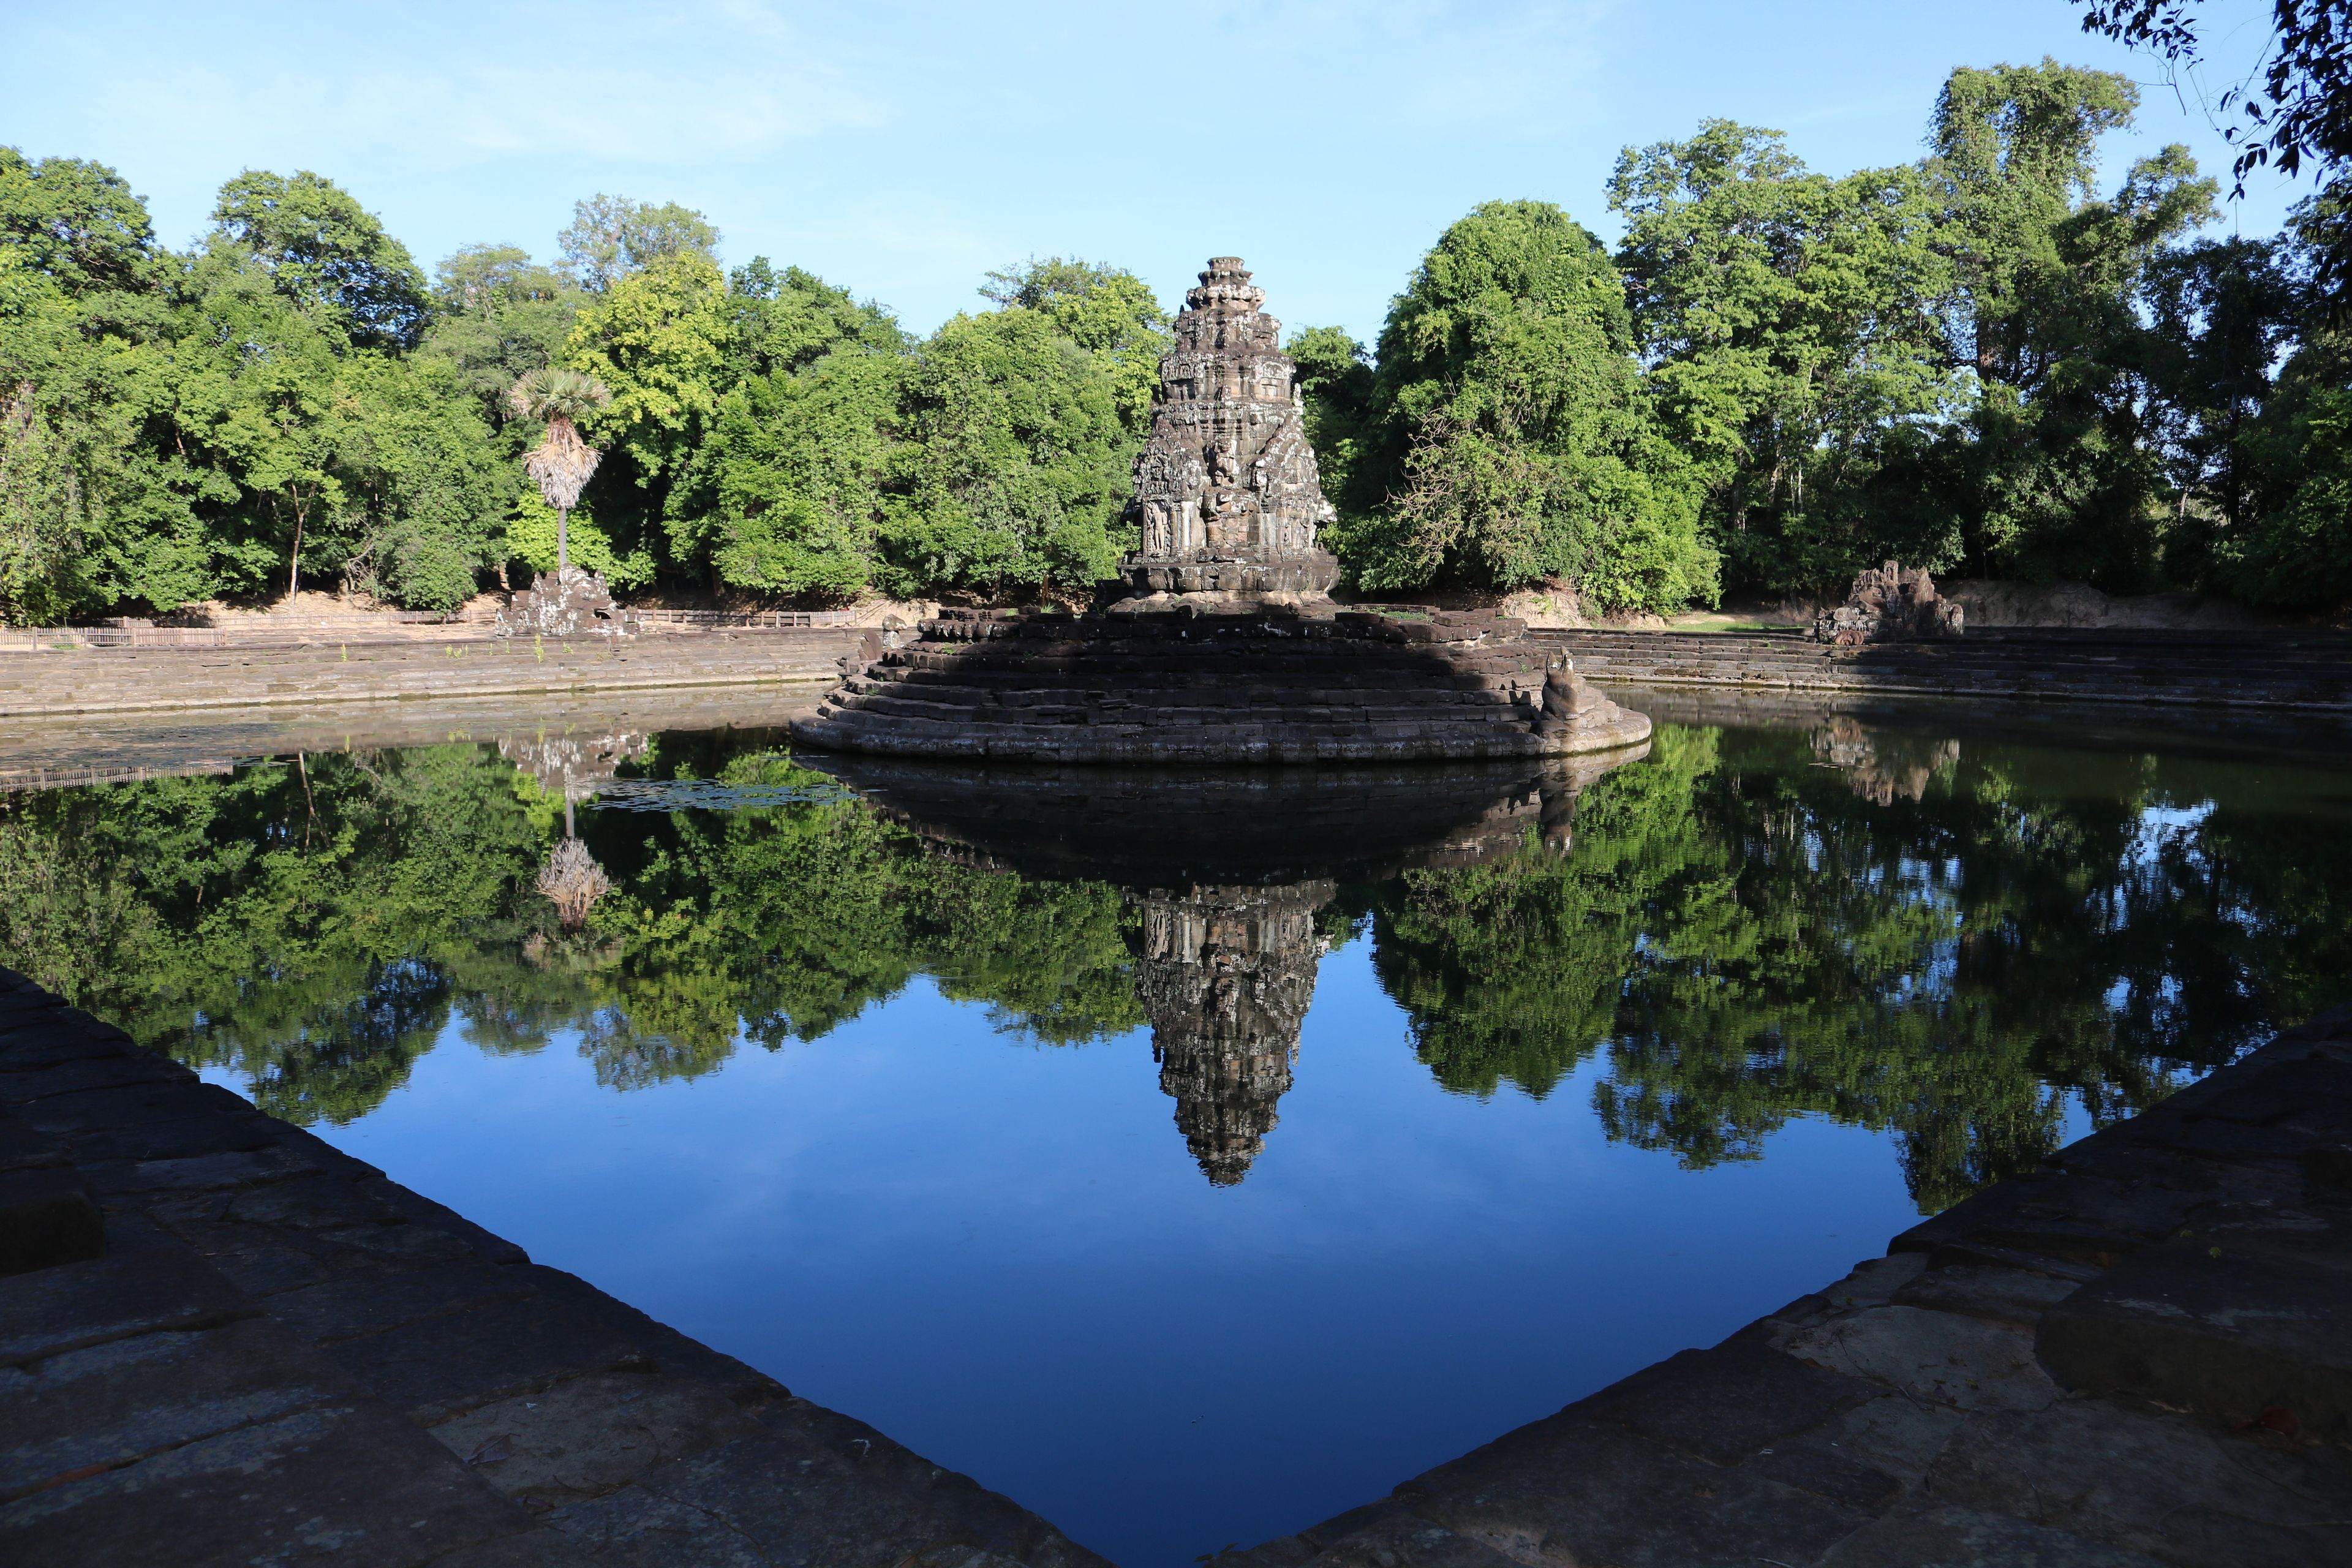 Pool in front of a temple in Cambodia